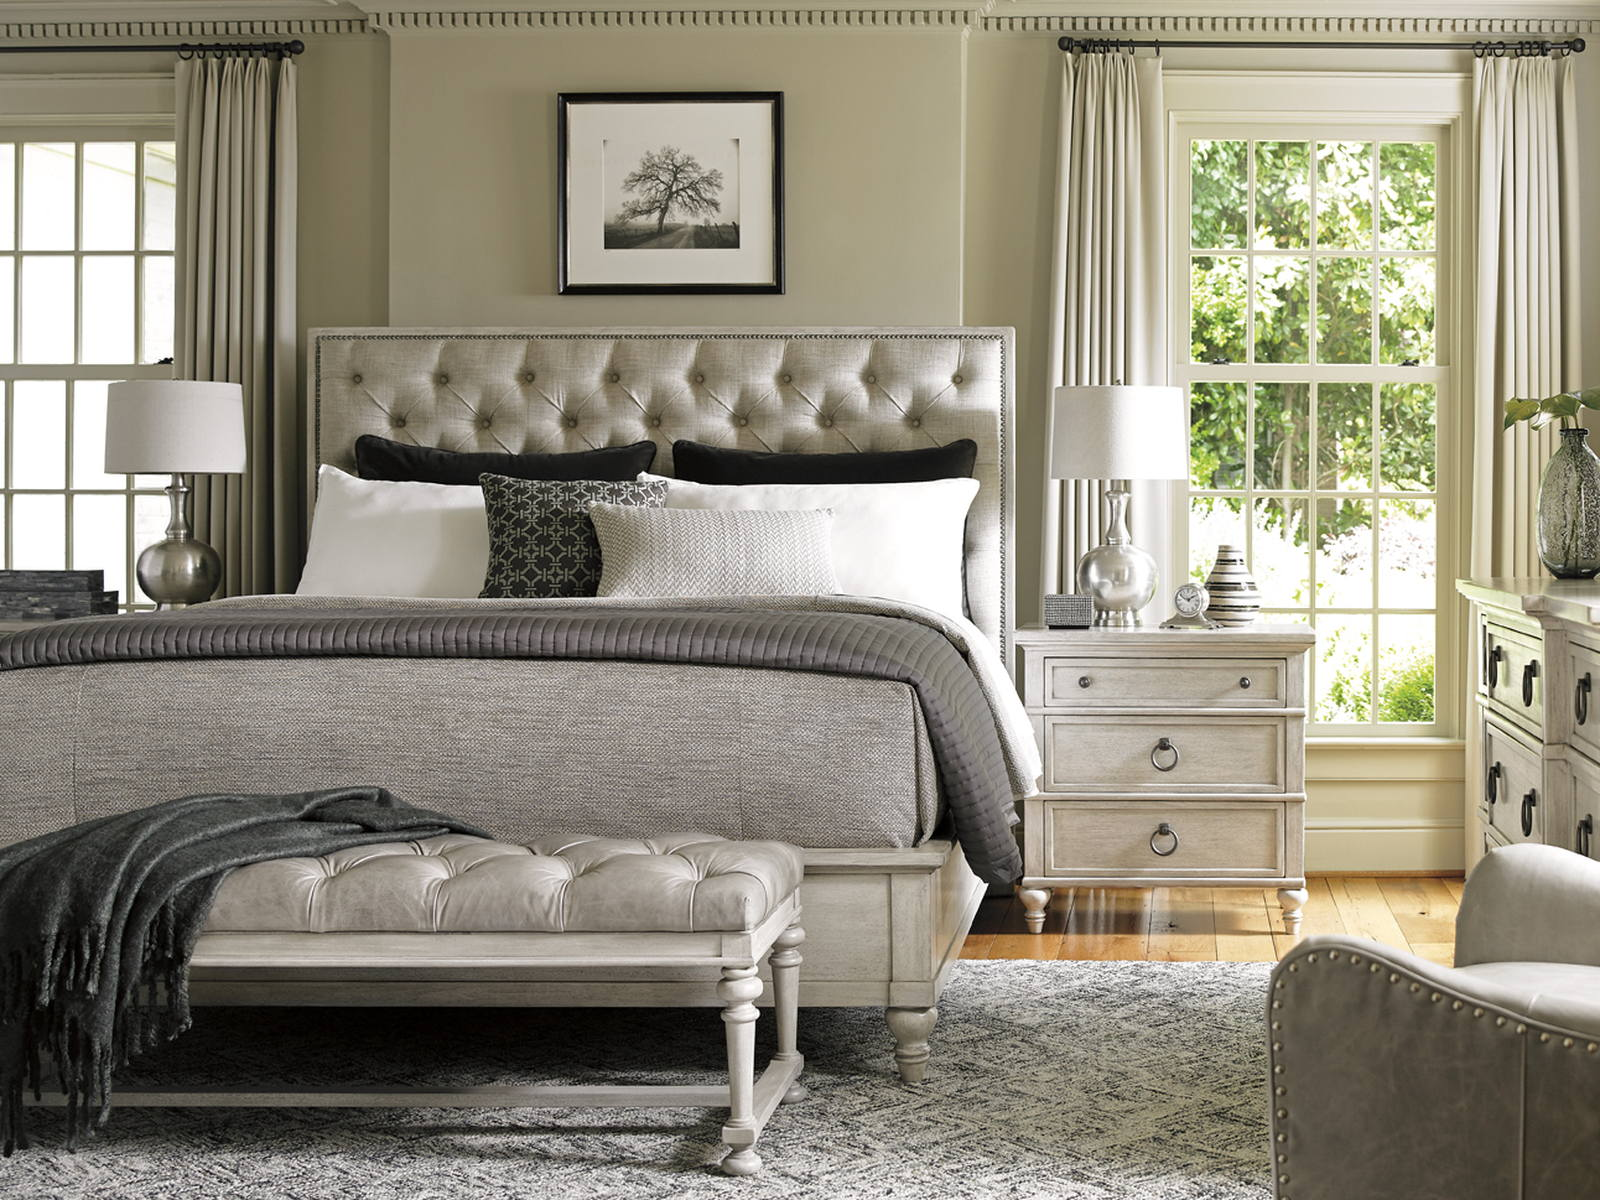 Elegant Lexington Oyster Bay 4 Piece Sag Harbor Tufted Upholstered Bedroom Set In  Distressed